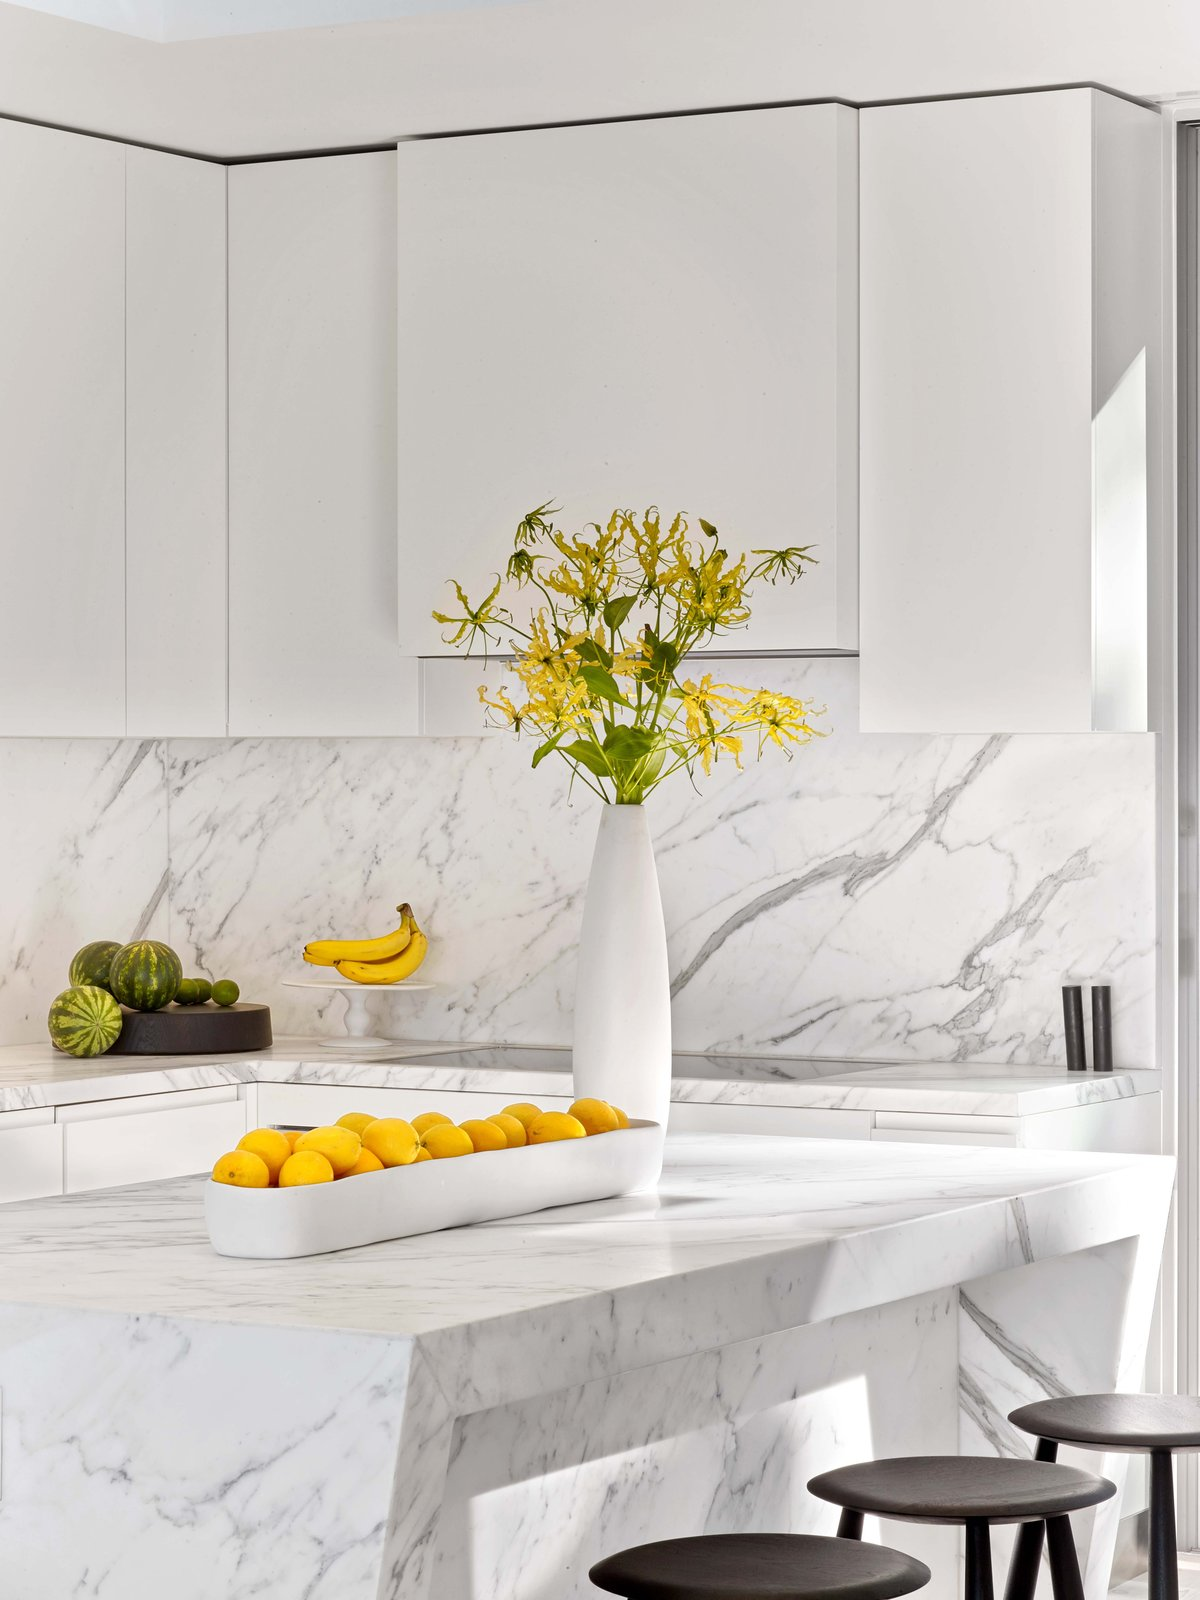 Tagged: Kitchen, White Cabinet, Marble Counter, and Marble Backsplashe.  Glen Park Residence by CCS Architecture